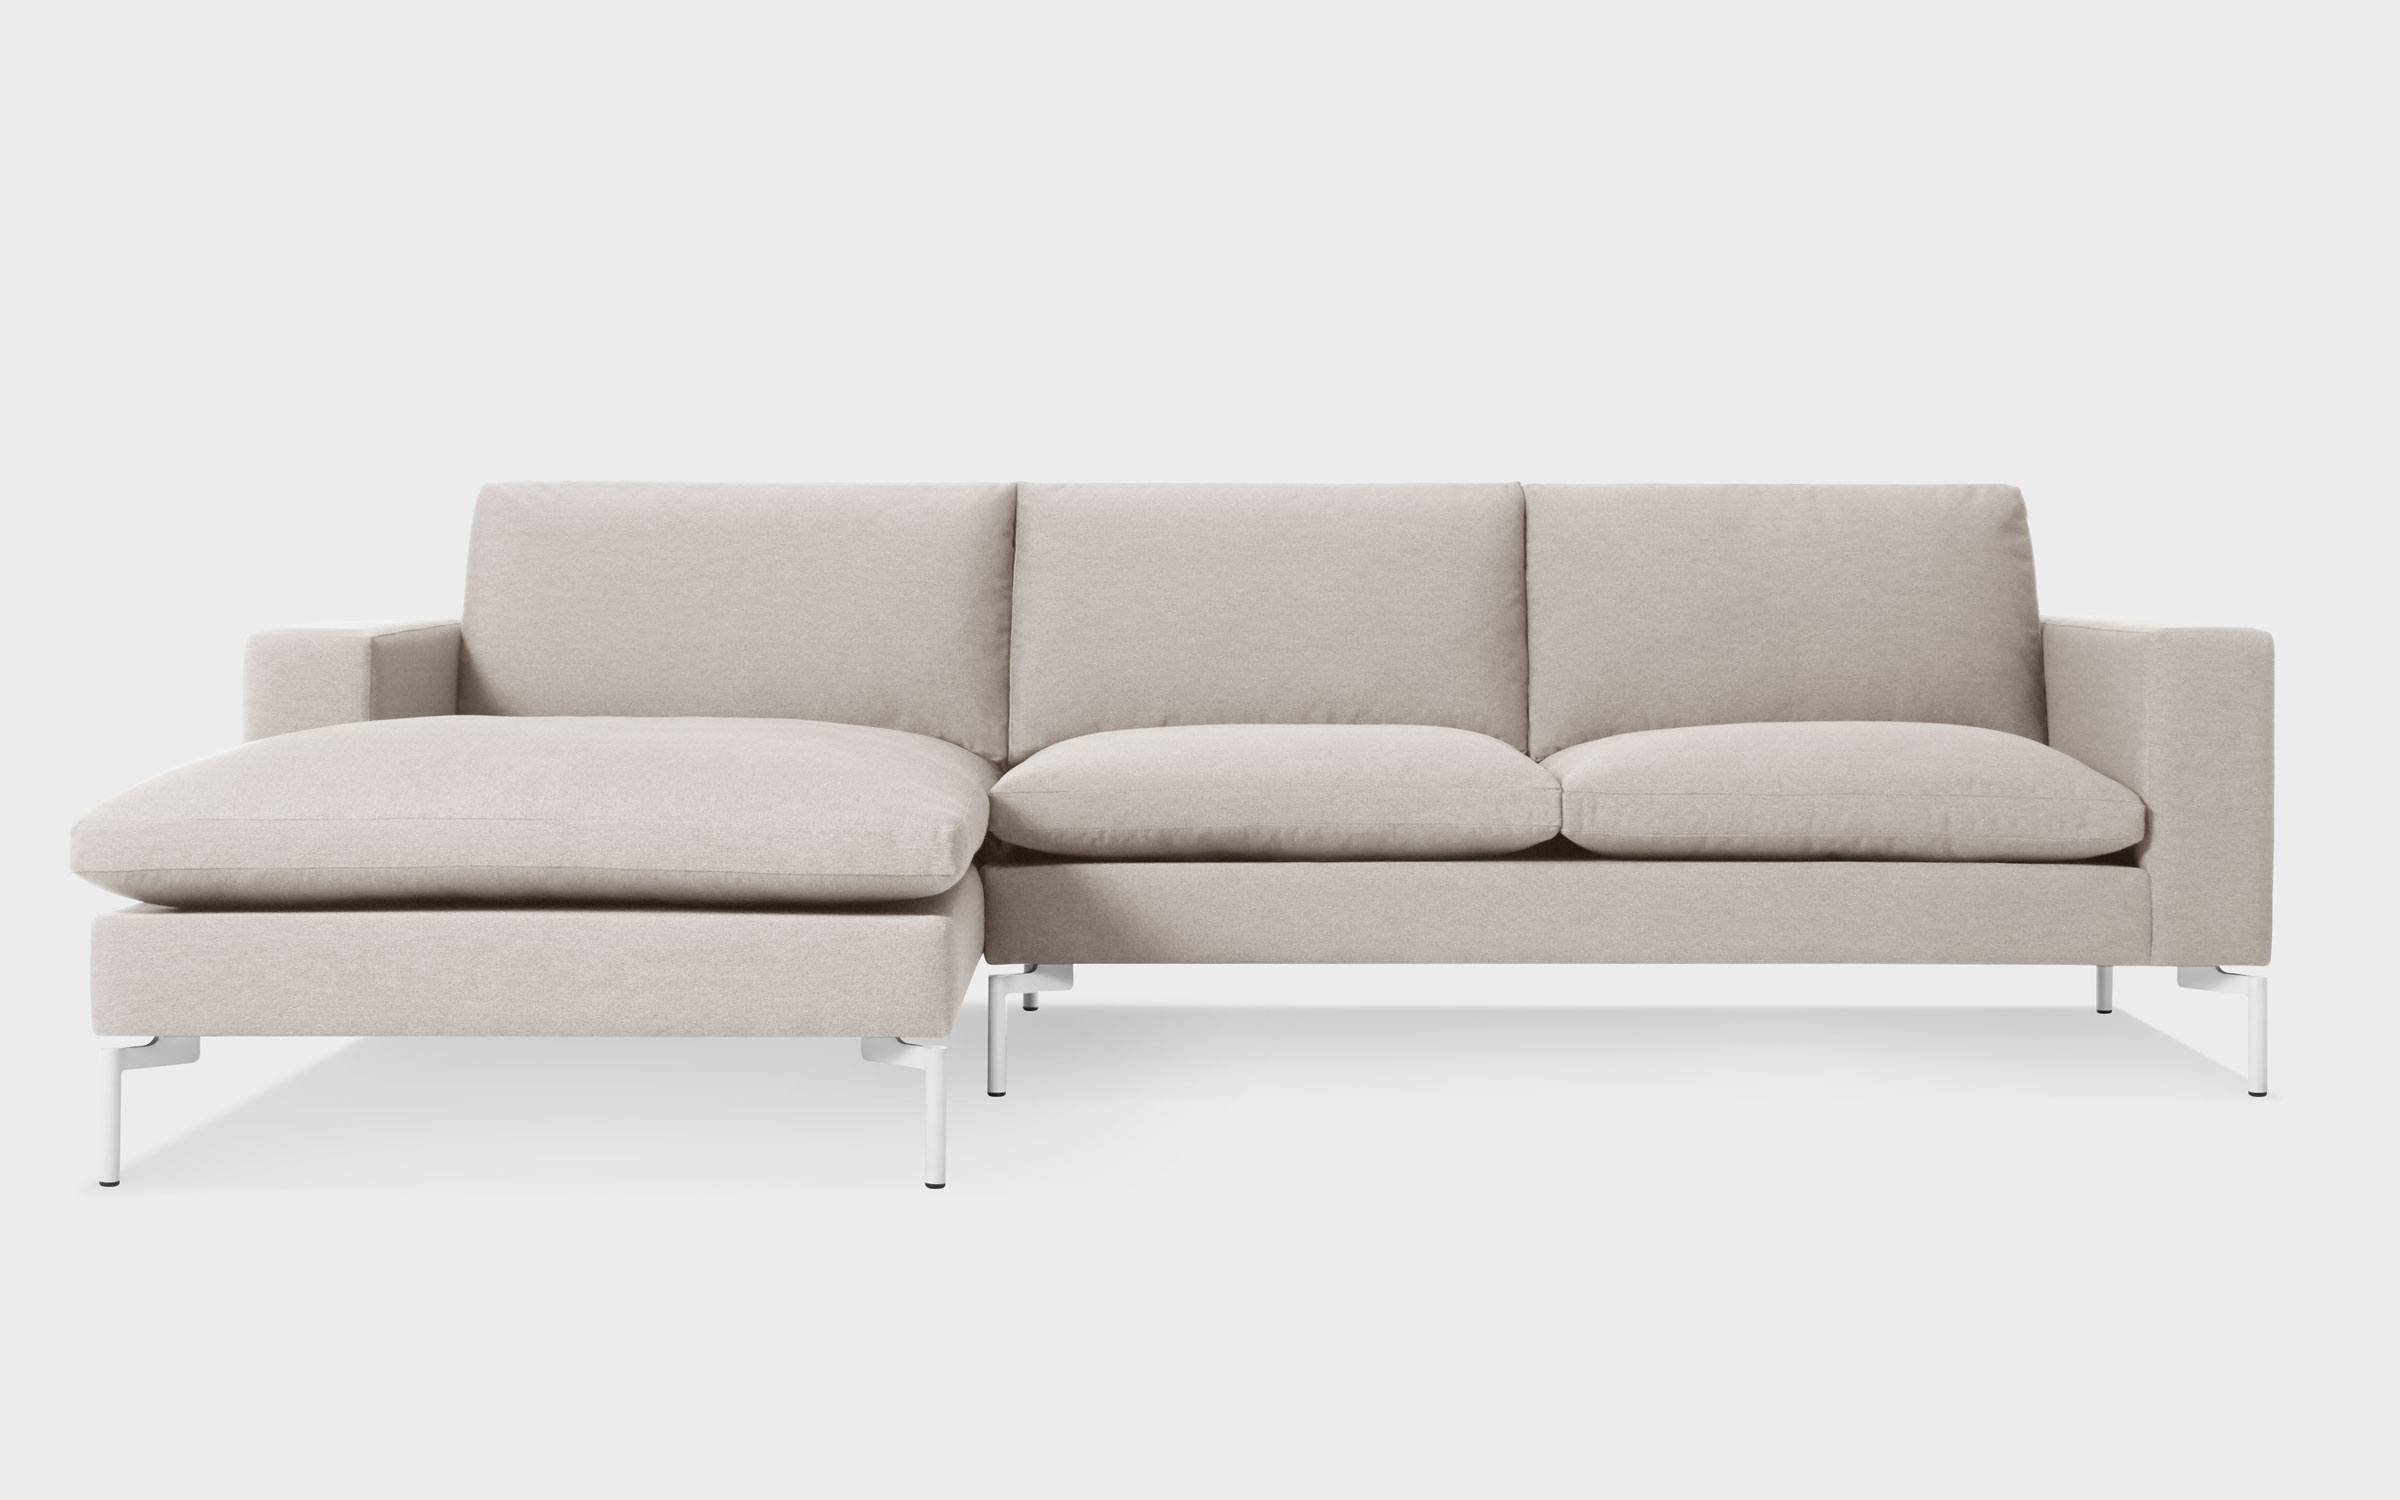 Most Popular New Standard Modern Fabric Sofa W/ Right Chaise (View 8 of 15)